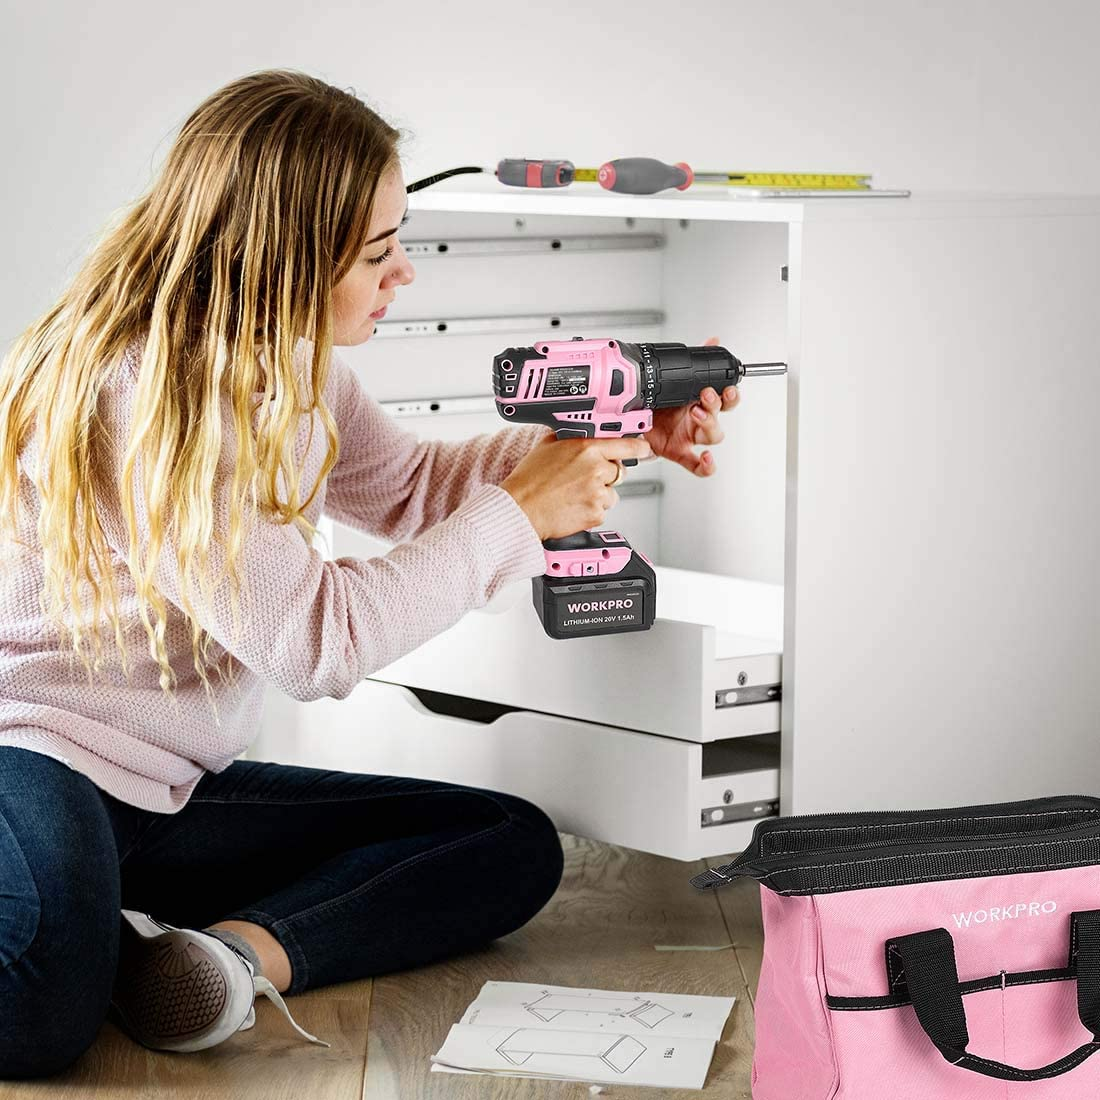 WORKPRO W004532A Pink Cordless Power Drill for Women